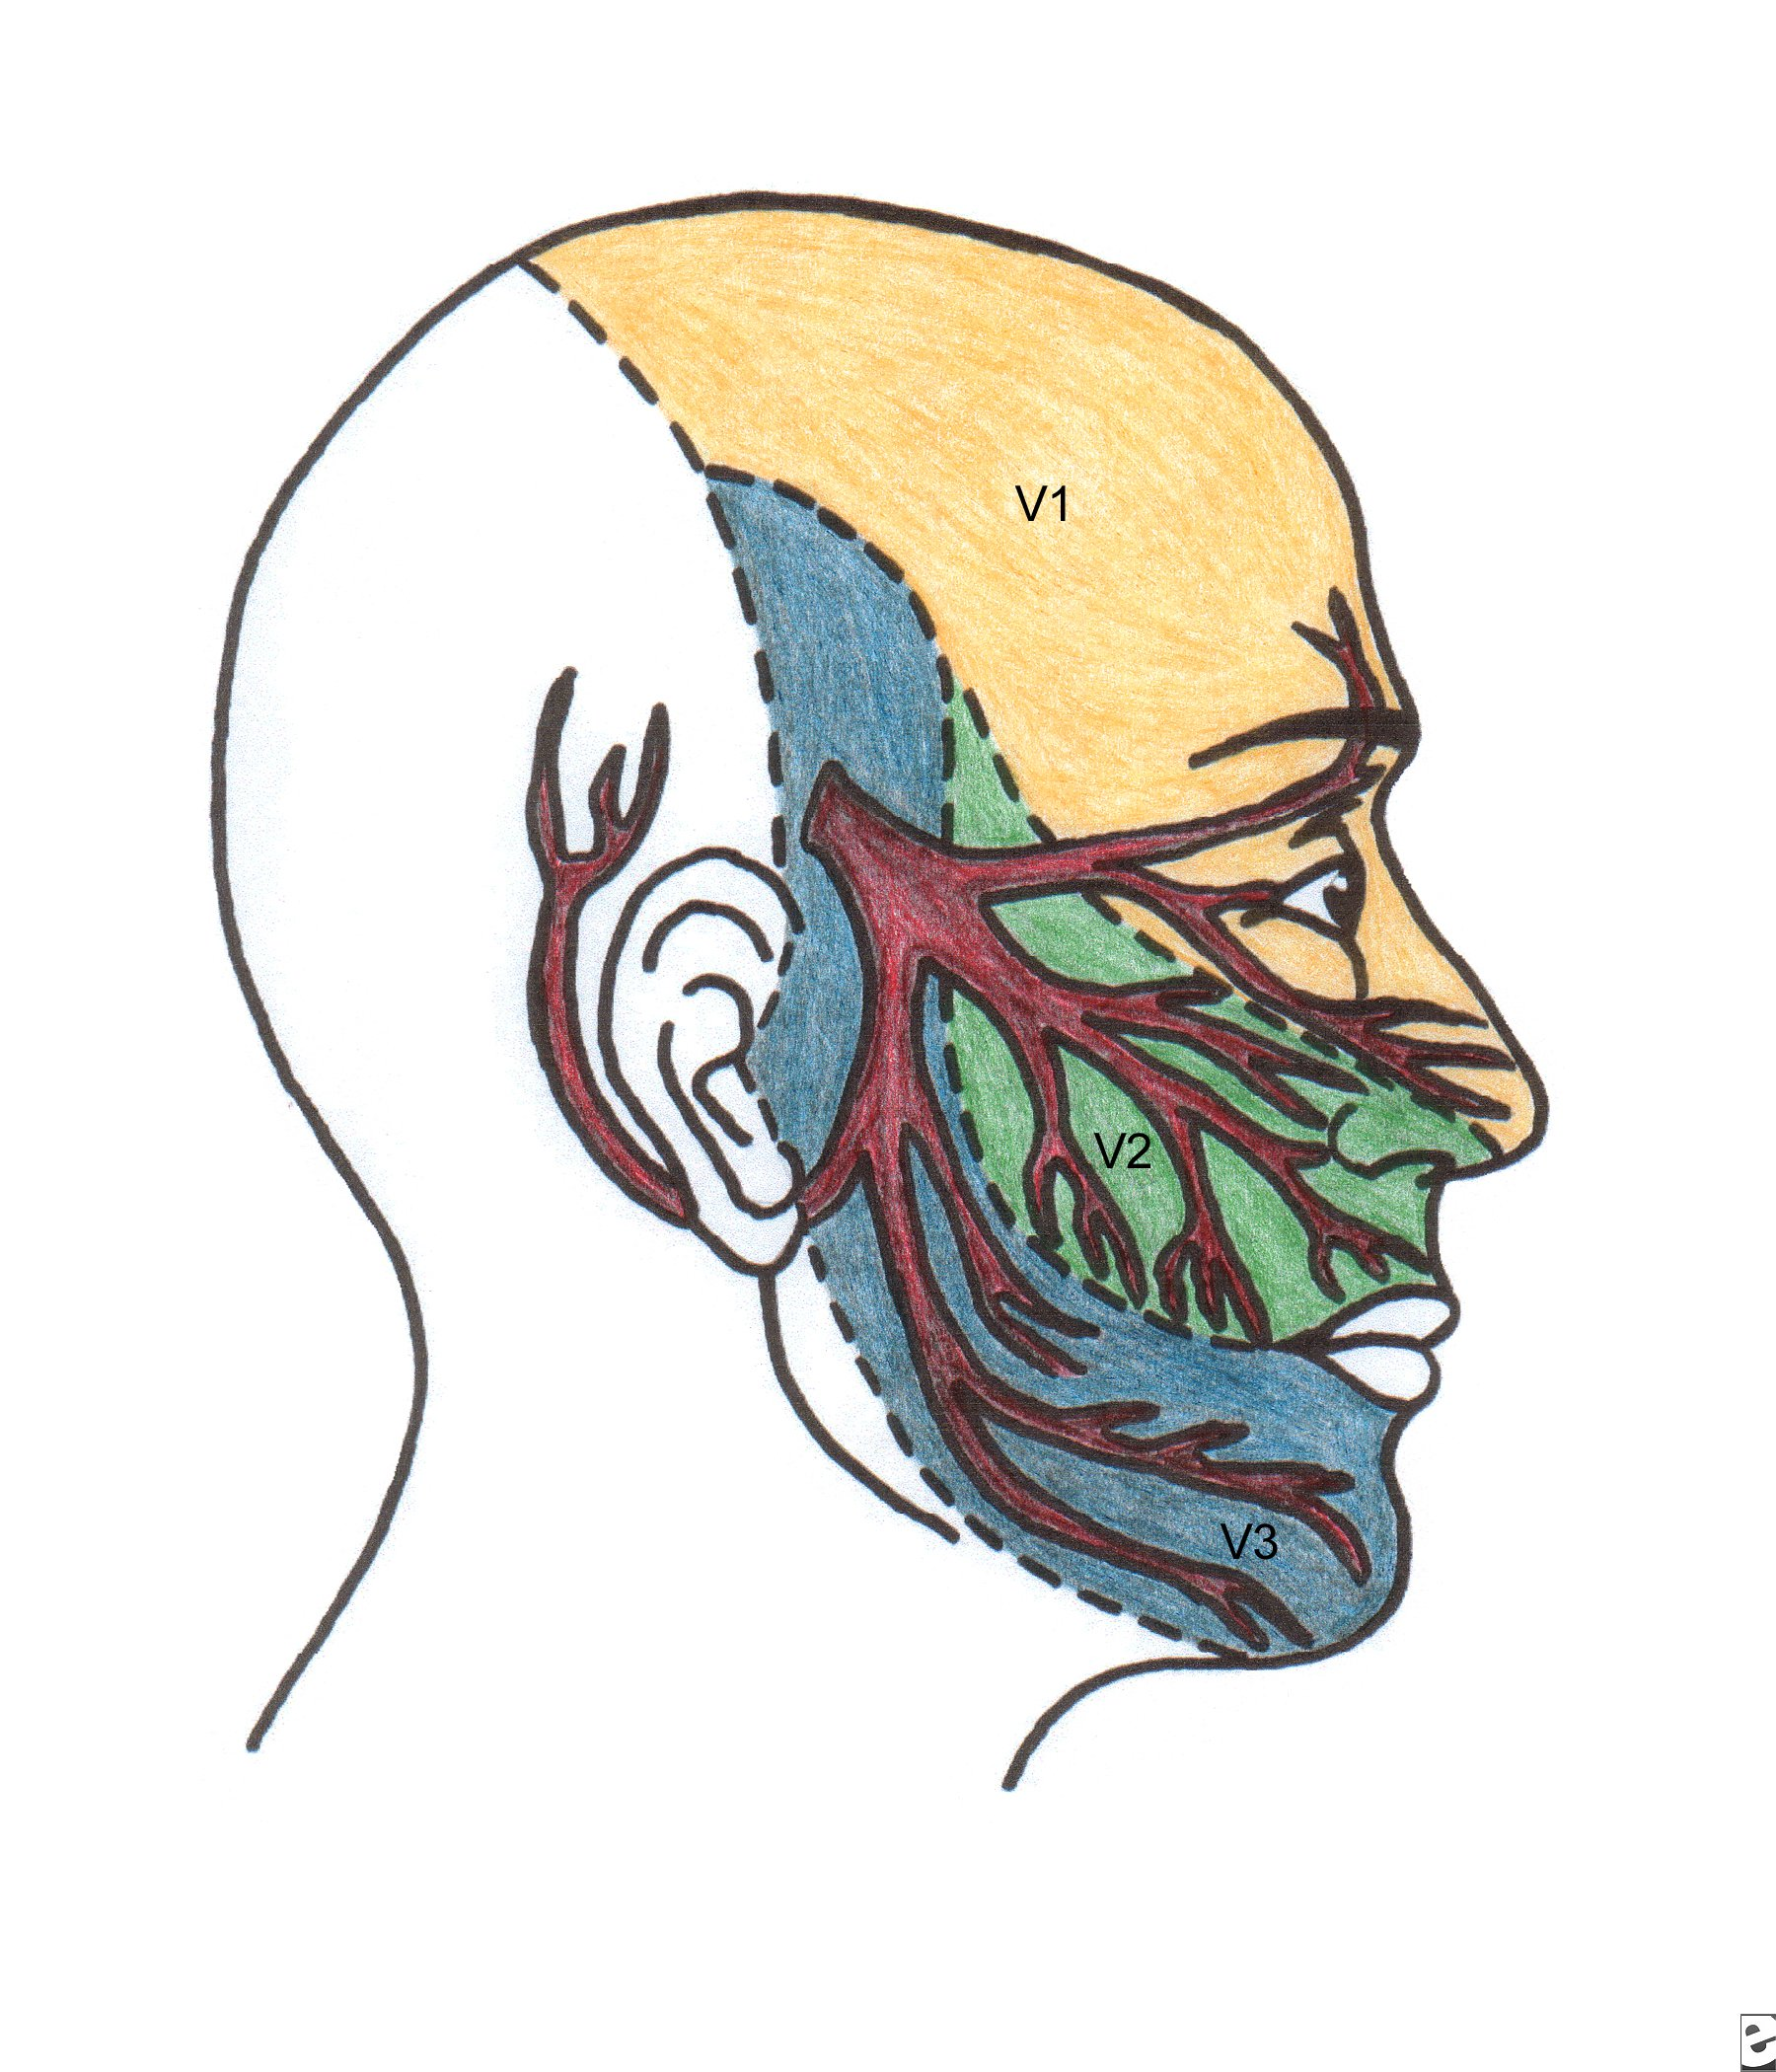 The trigeminal nerve is a cranial nerve (meaning it exits the brain through the skull, bypassing the spinal cord). The trigeminal nerve provides sensation and control of the face. Inflammation of or pressure on the trigeminal nerve can cause intense pain, sometimes requiring surgery.